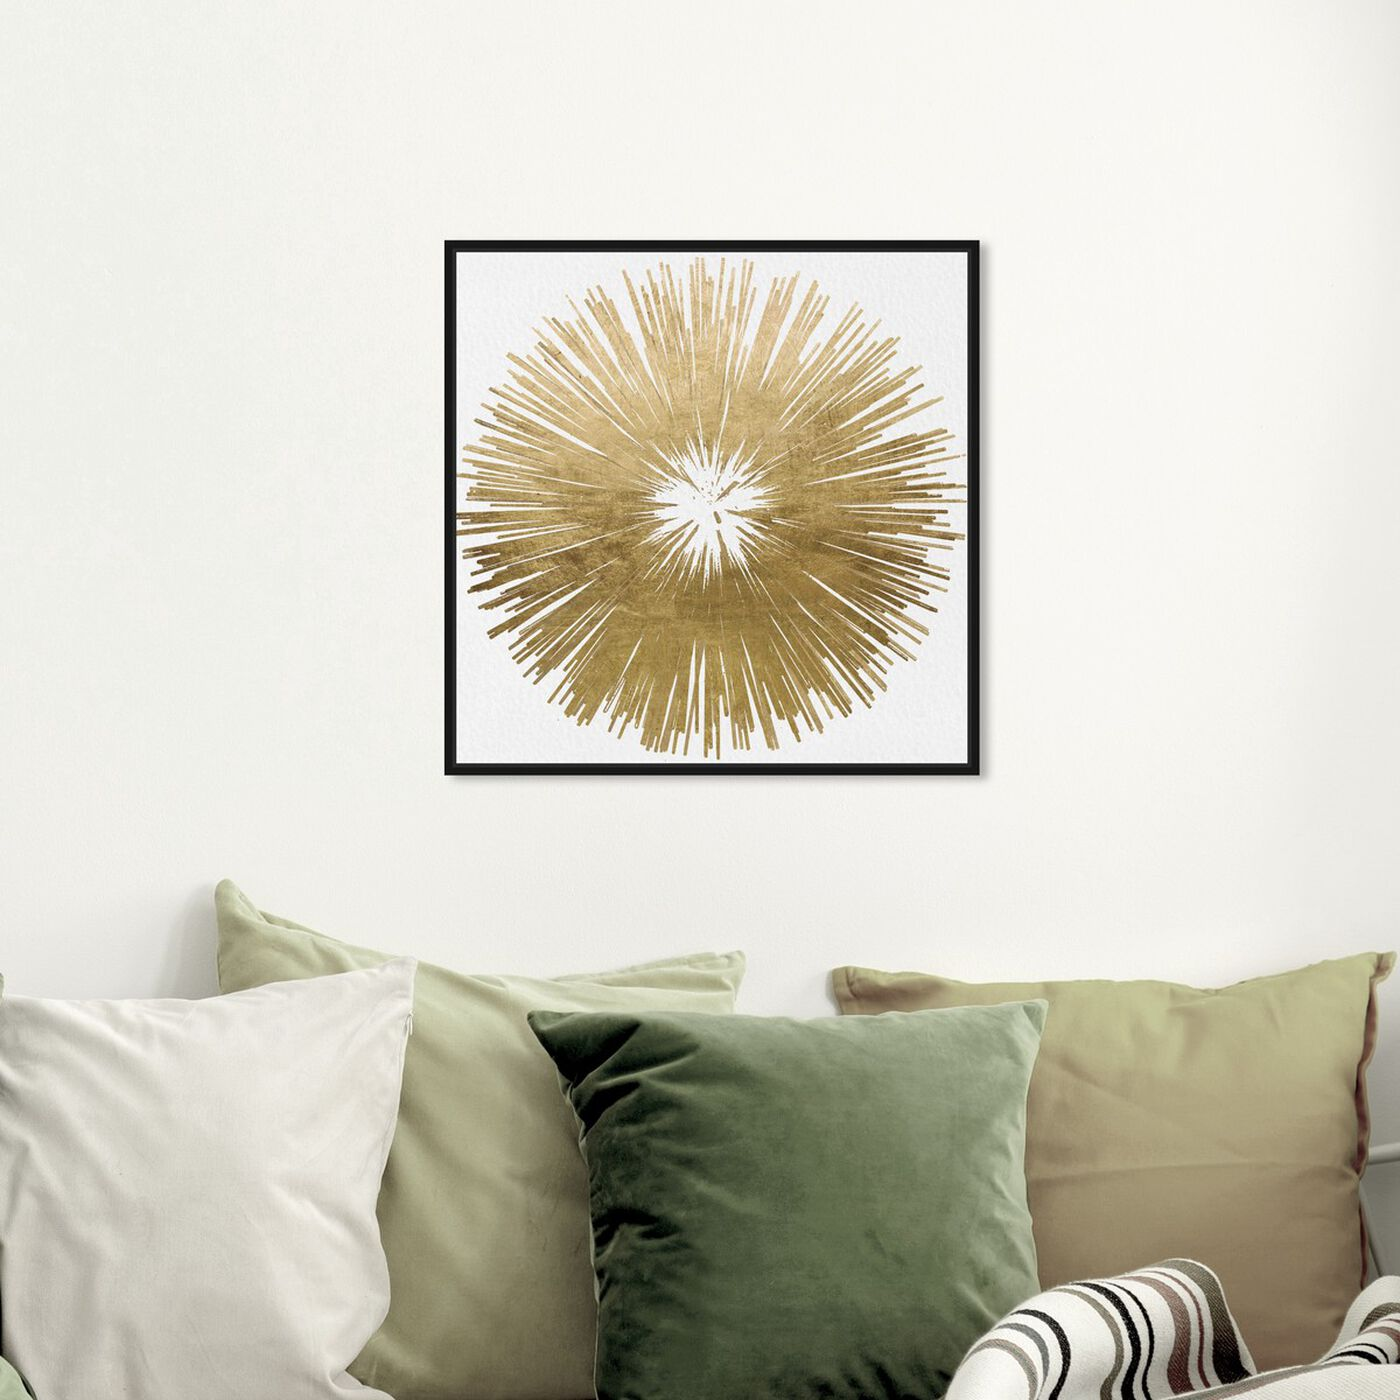 Hanging view of Sunburst Golden featuring symbols and objects and symbols art.